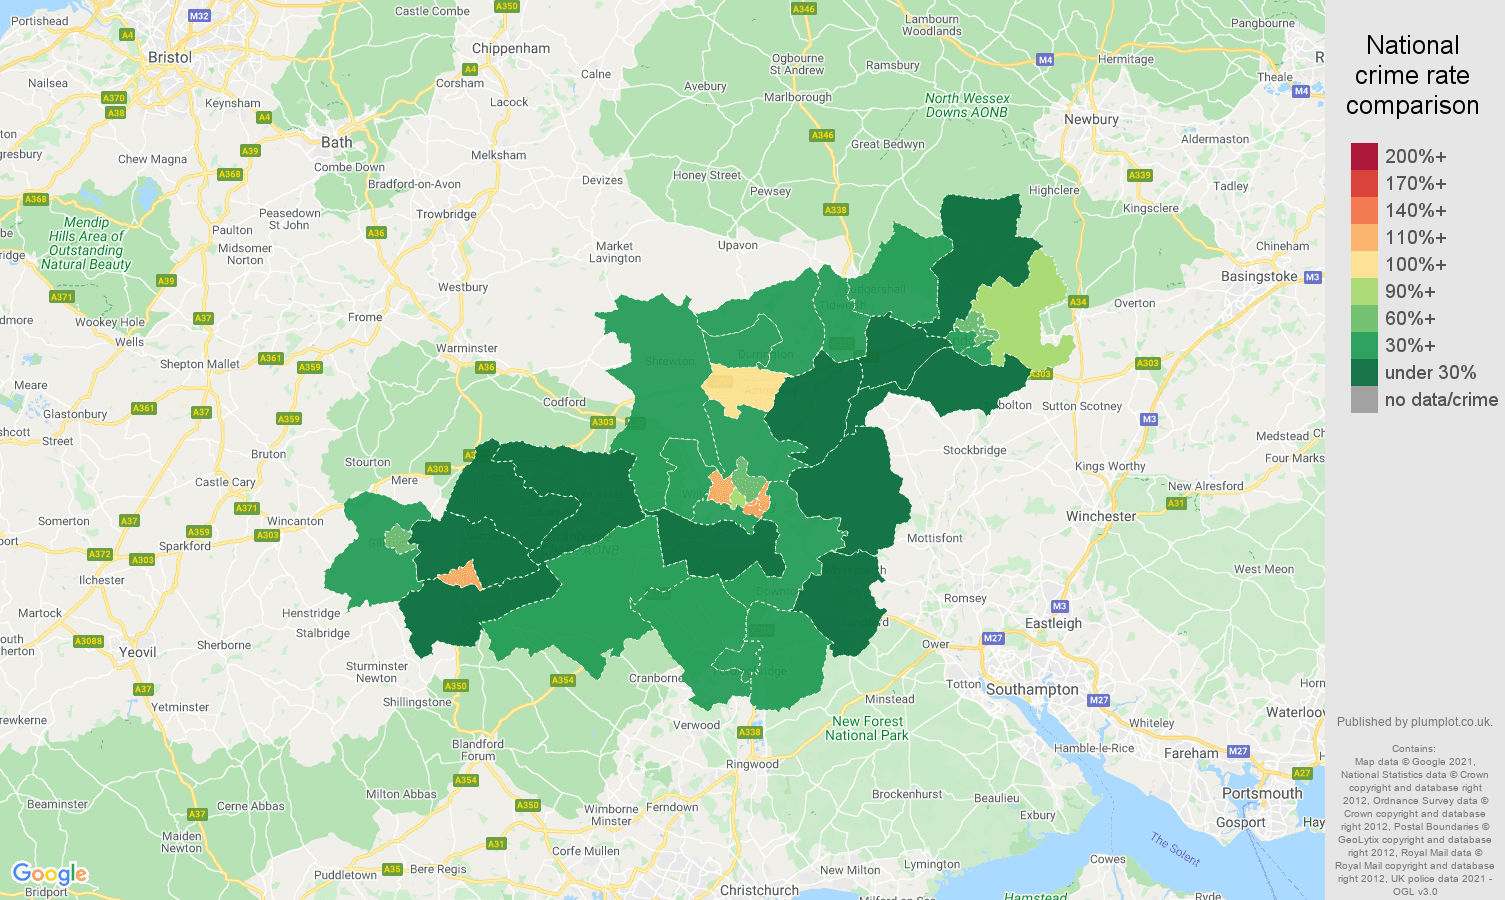 Salisbury antisocial behaviour crime rate comparison map